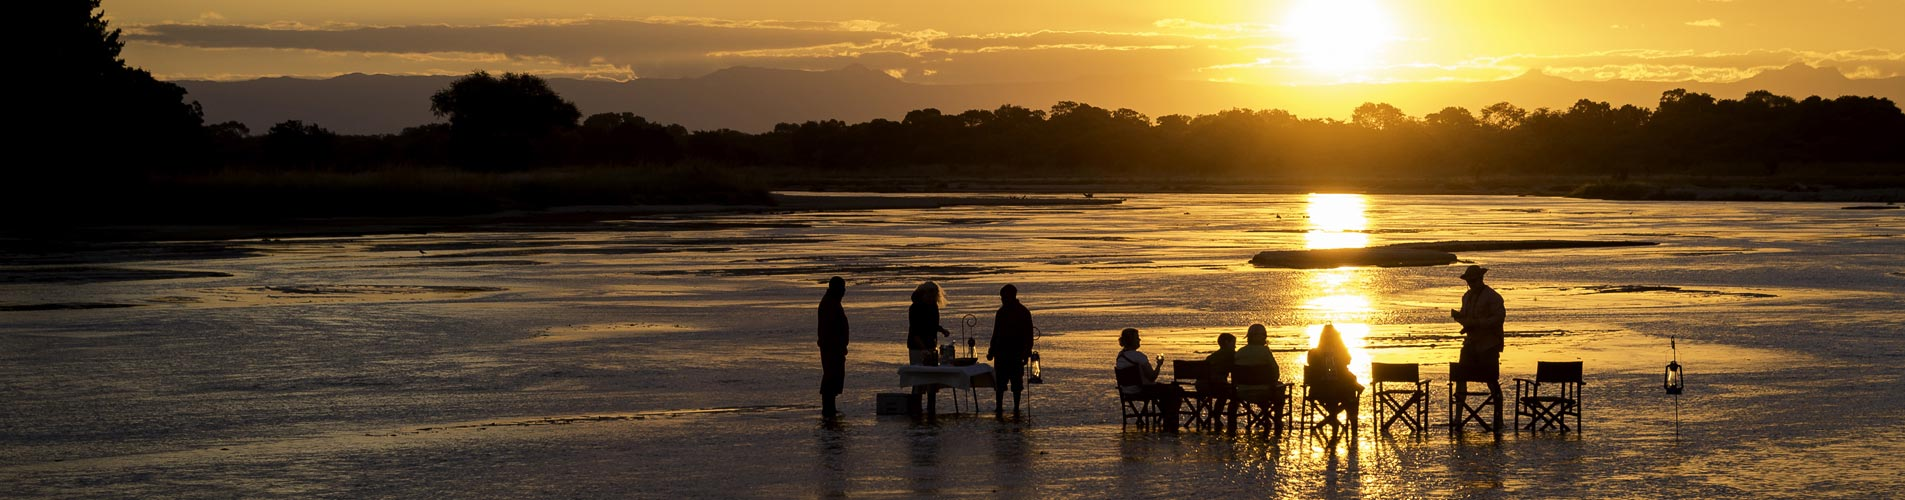 Custom Photographic Experiences, River Sundowners